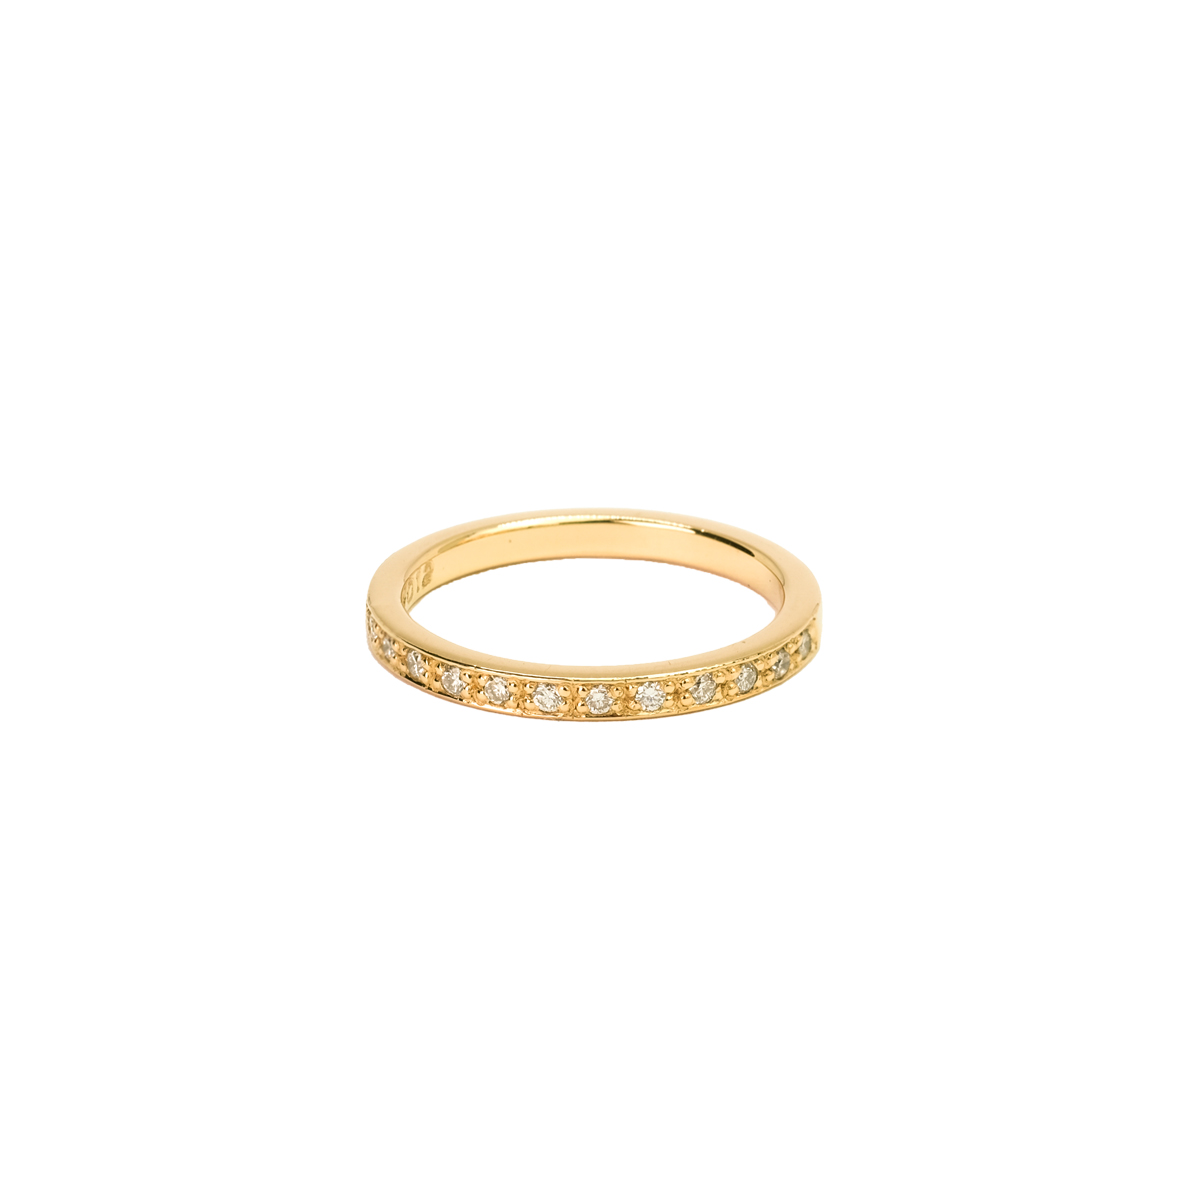 18K DIAMOND BAND RING in the group GIFT IDEAS at EMMA ISRAELSSON (ring086)